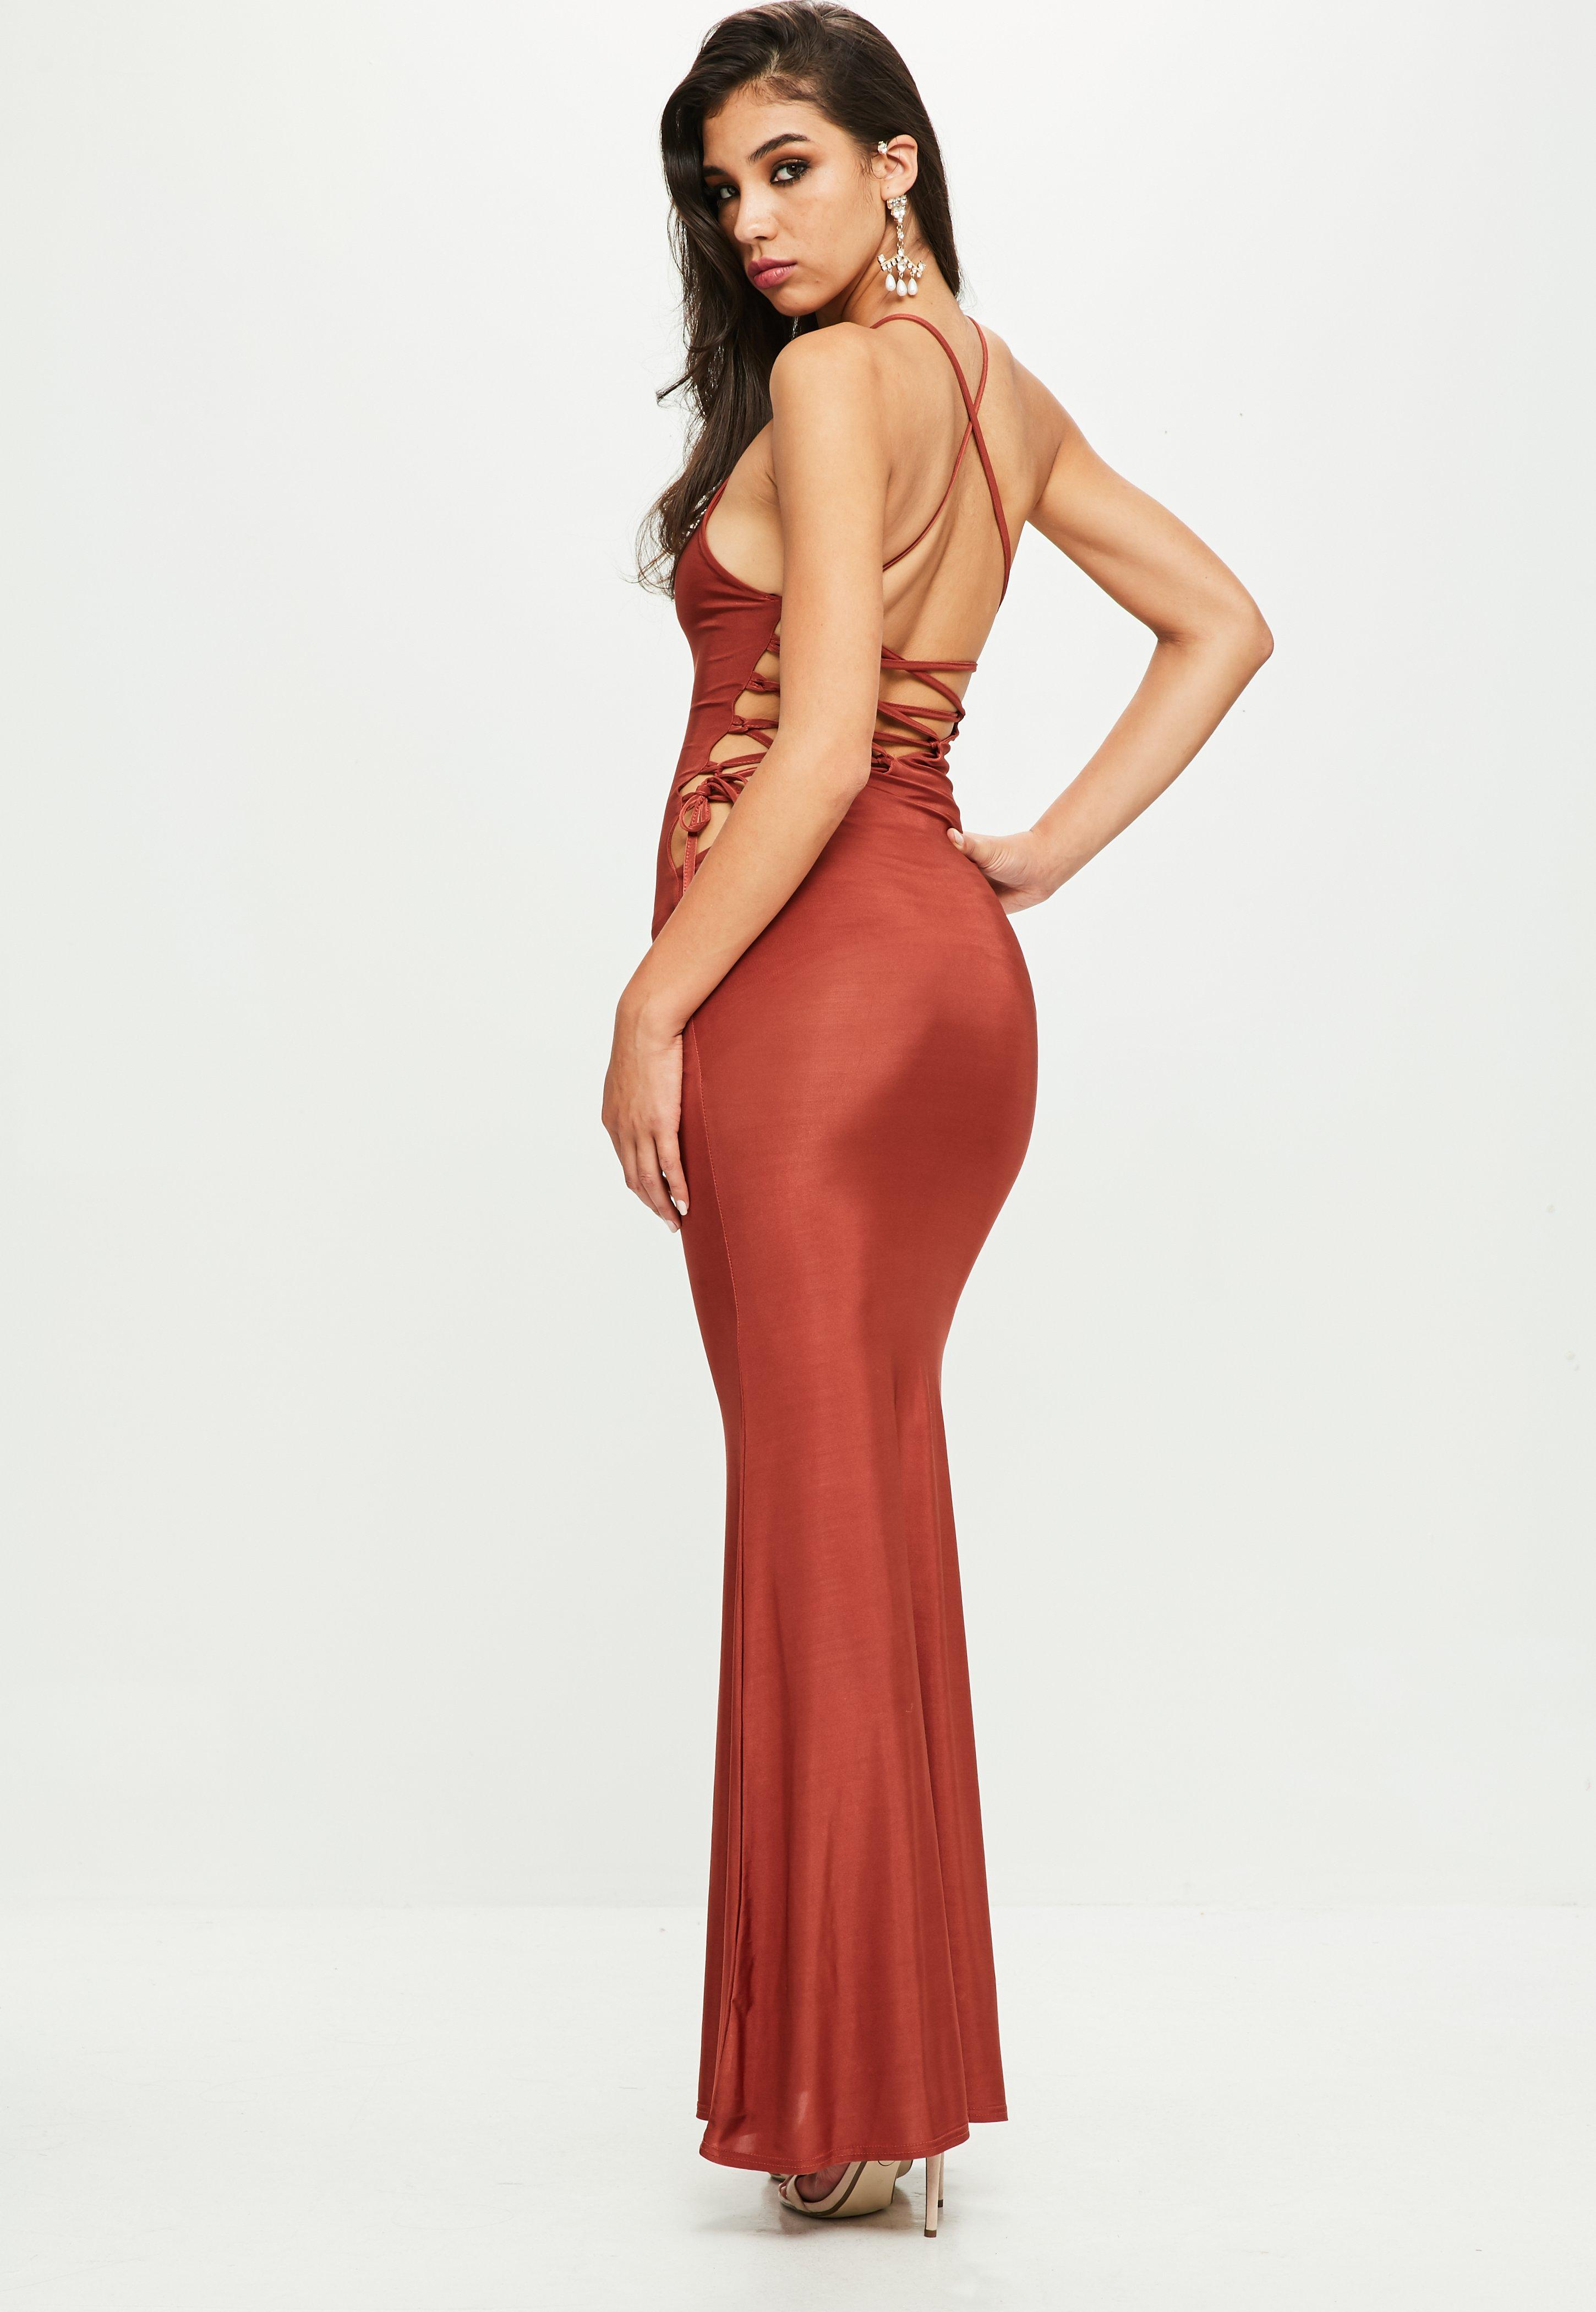 Online Cheap Missguided Orange Cowl Front Maxi Dress Discount Cheapest Ebay For Sale B12zna